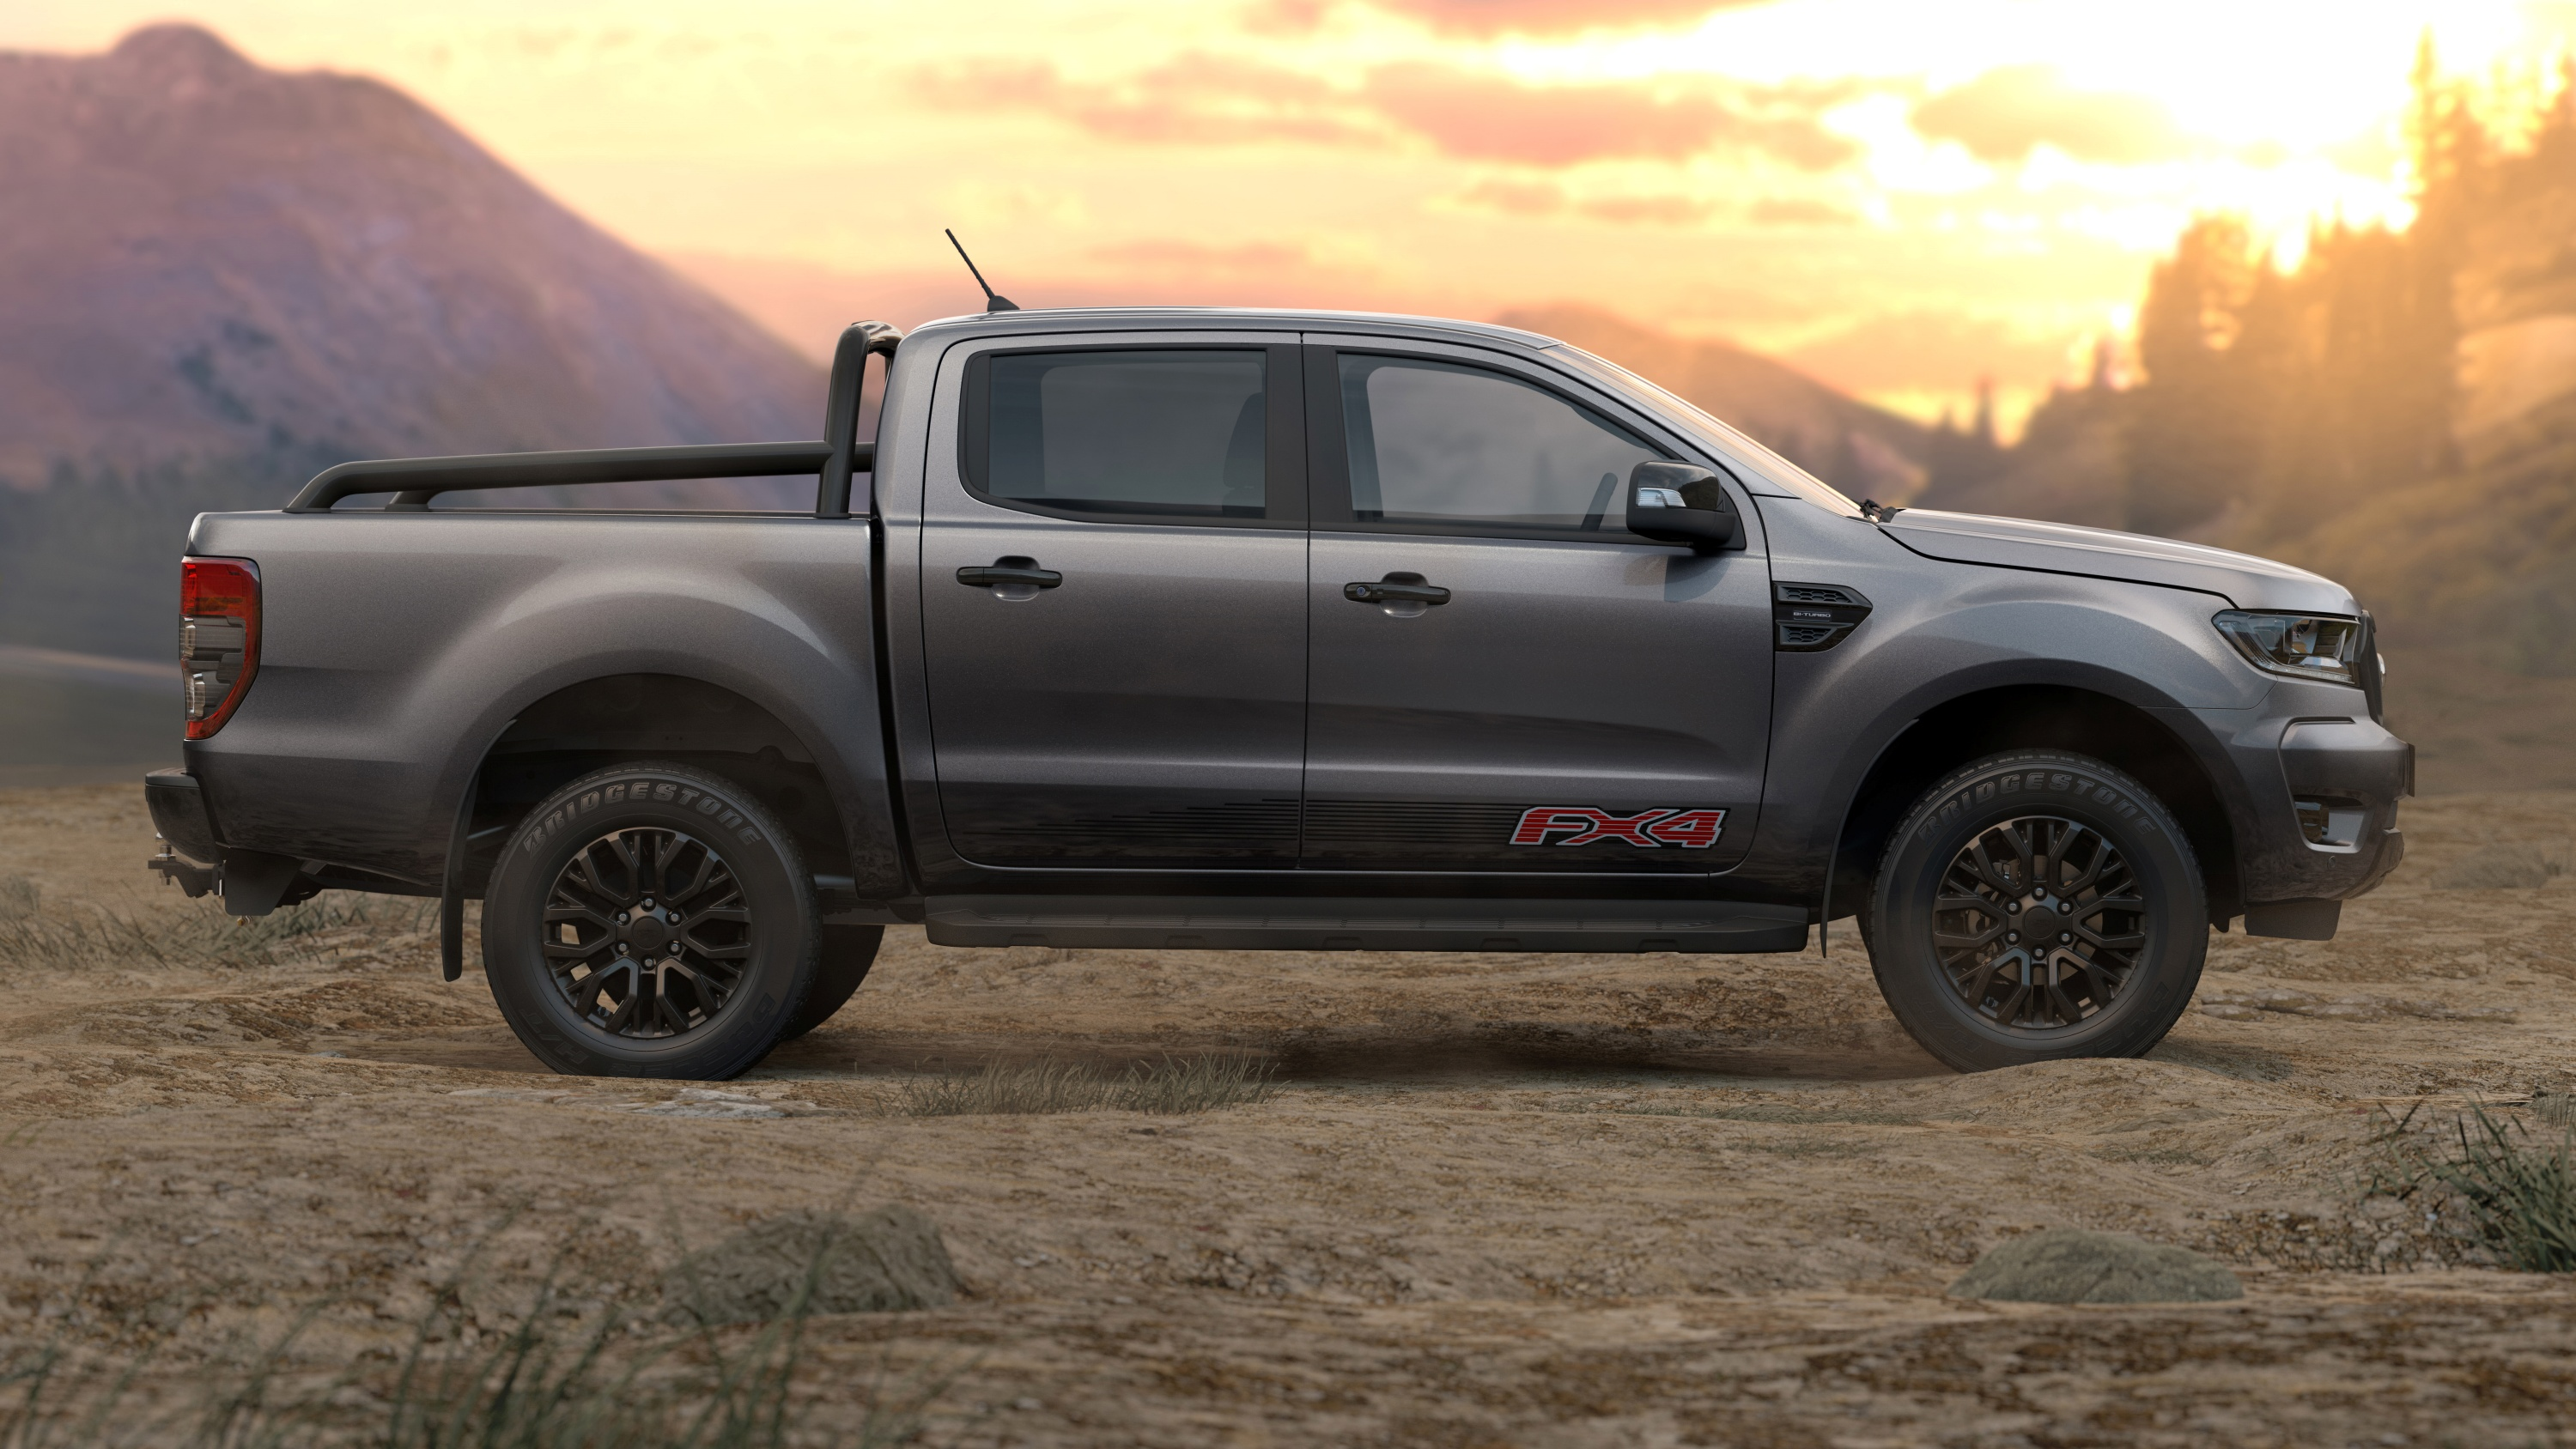 Ford Ranger FX4 Special Edition side